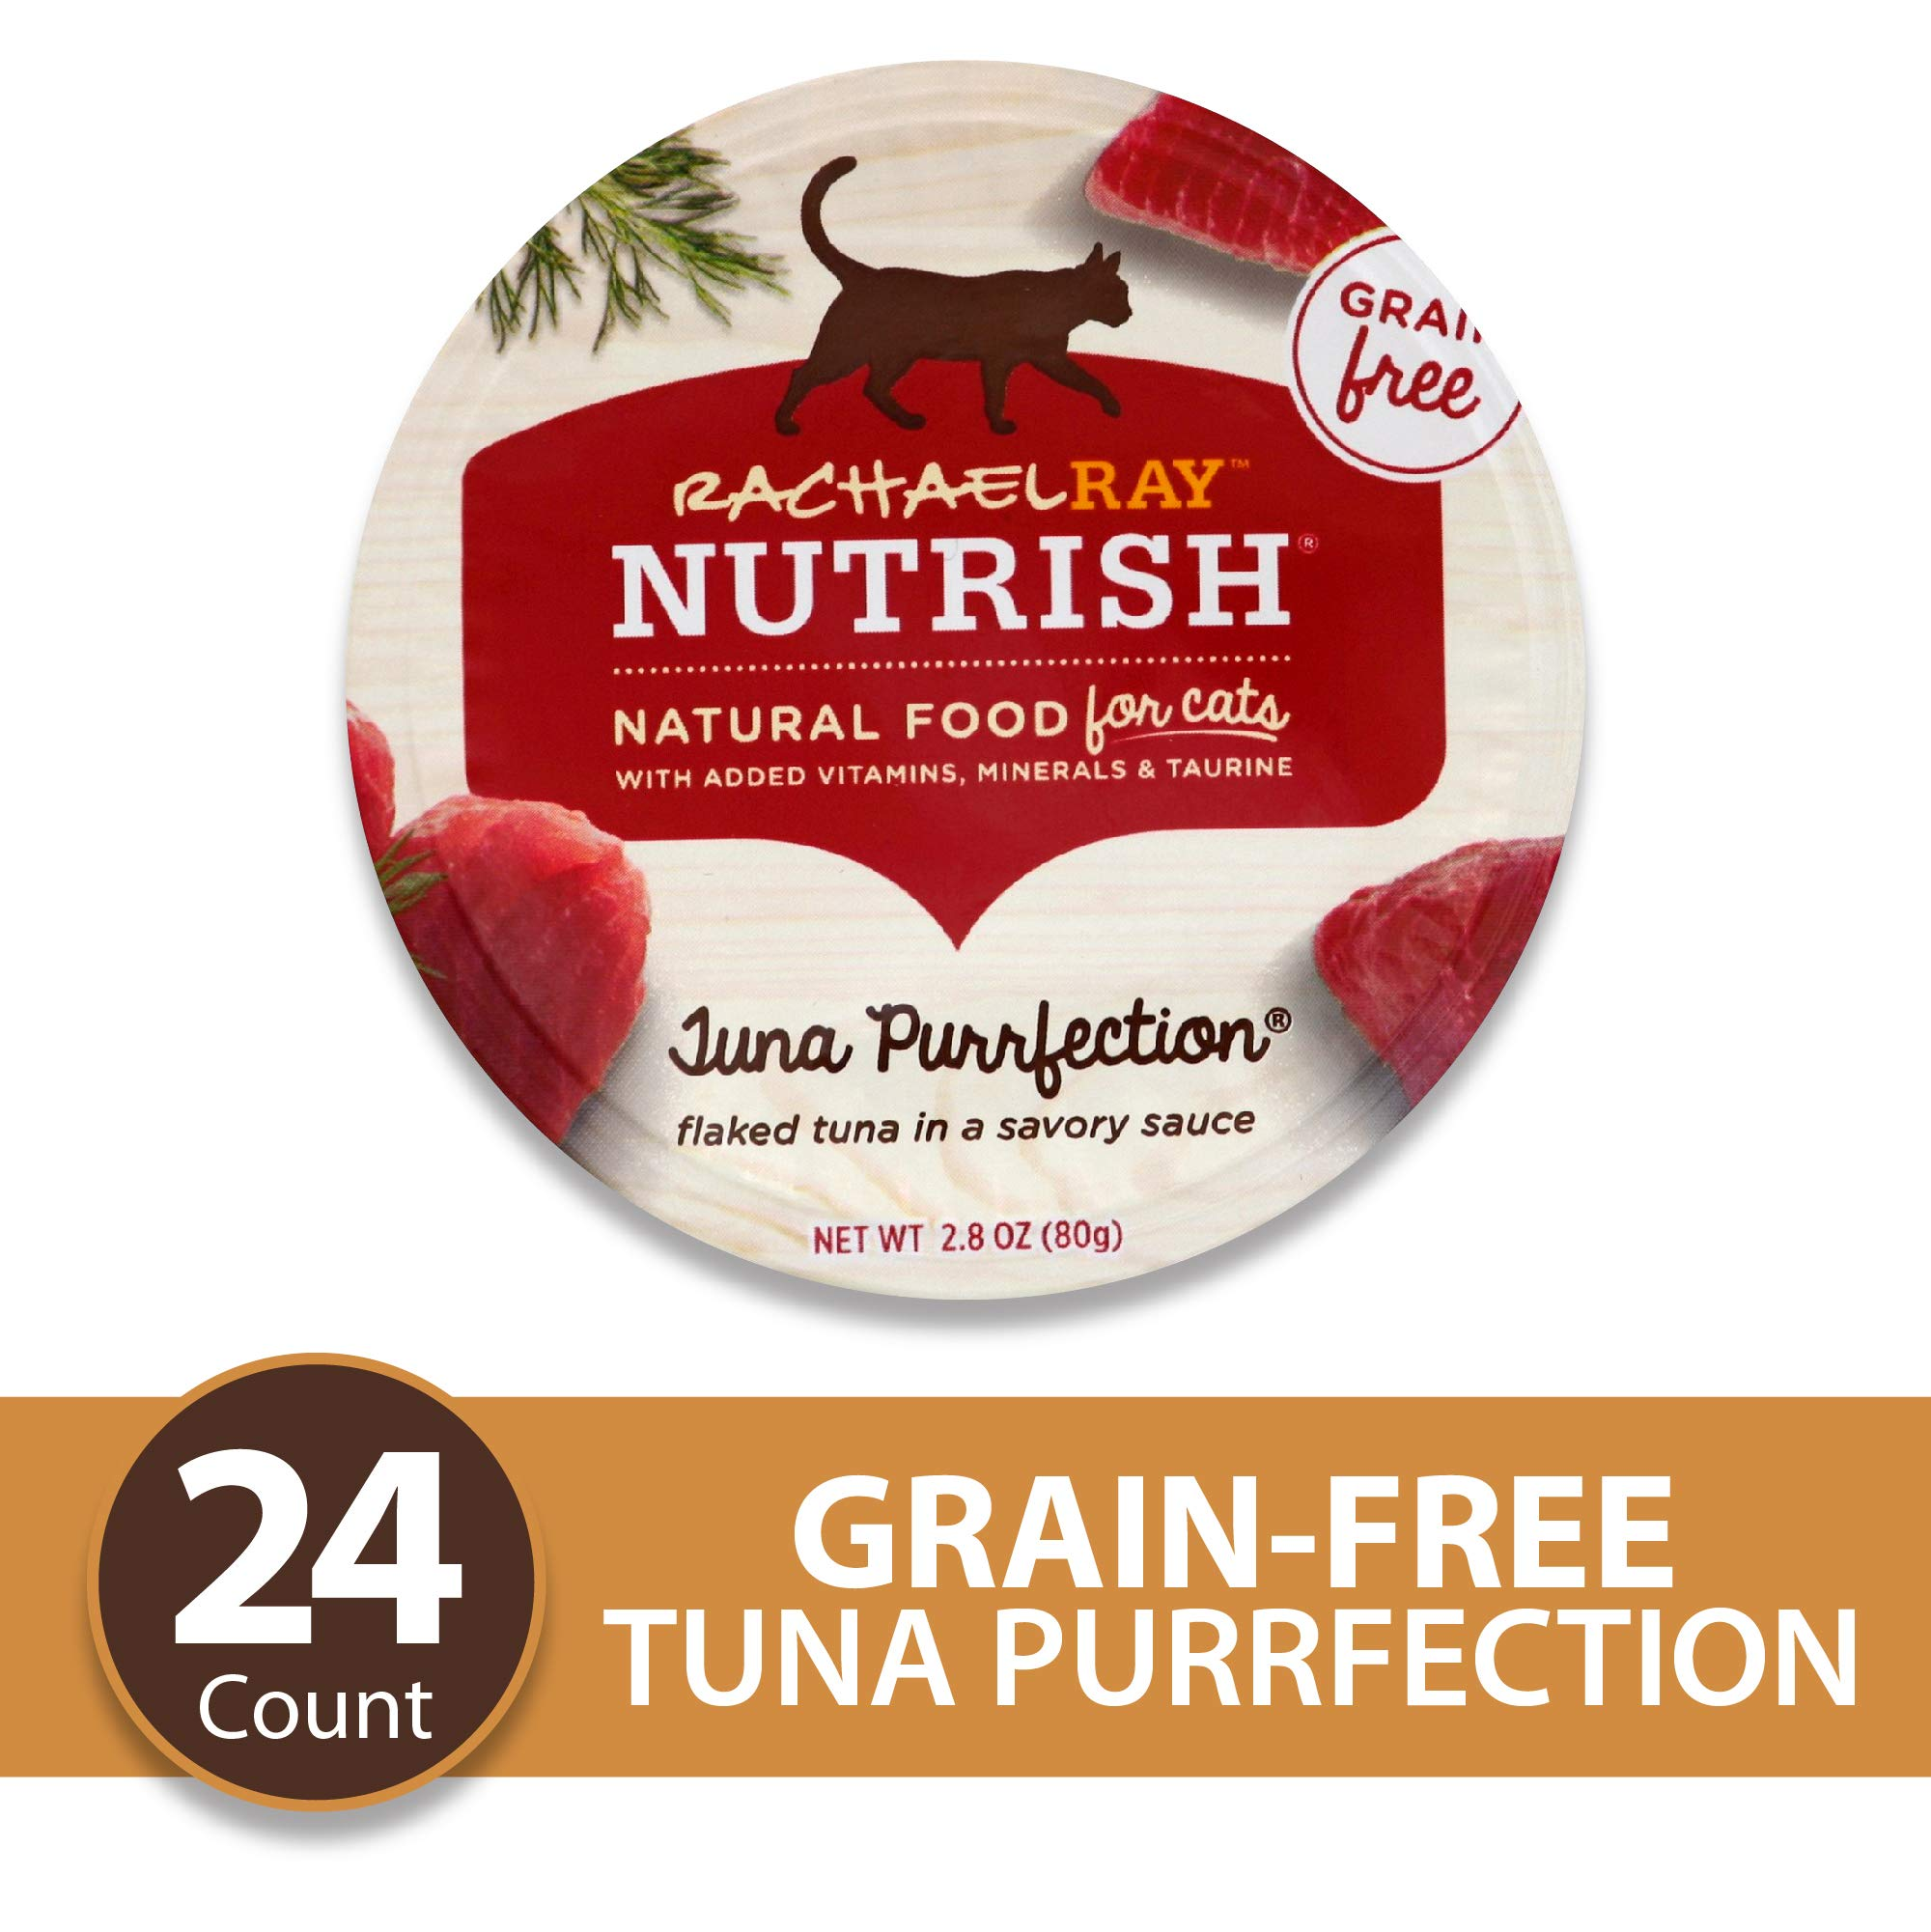 Rachael Ray Nutrish Natural Premium Wet Cat Food, Tuna Purrfection, Grain Free, 2.8 Oz. Tub (Pack Of 24) by Rachael Ray Nutrish